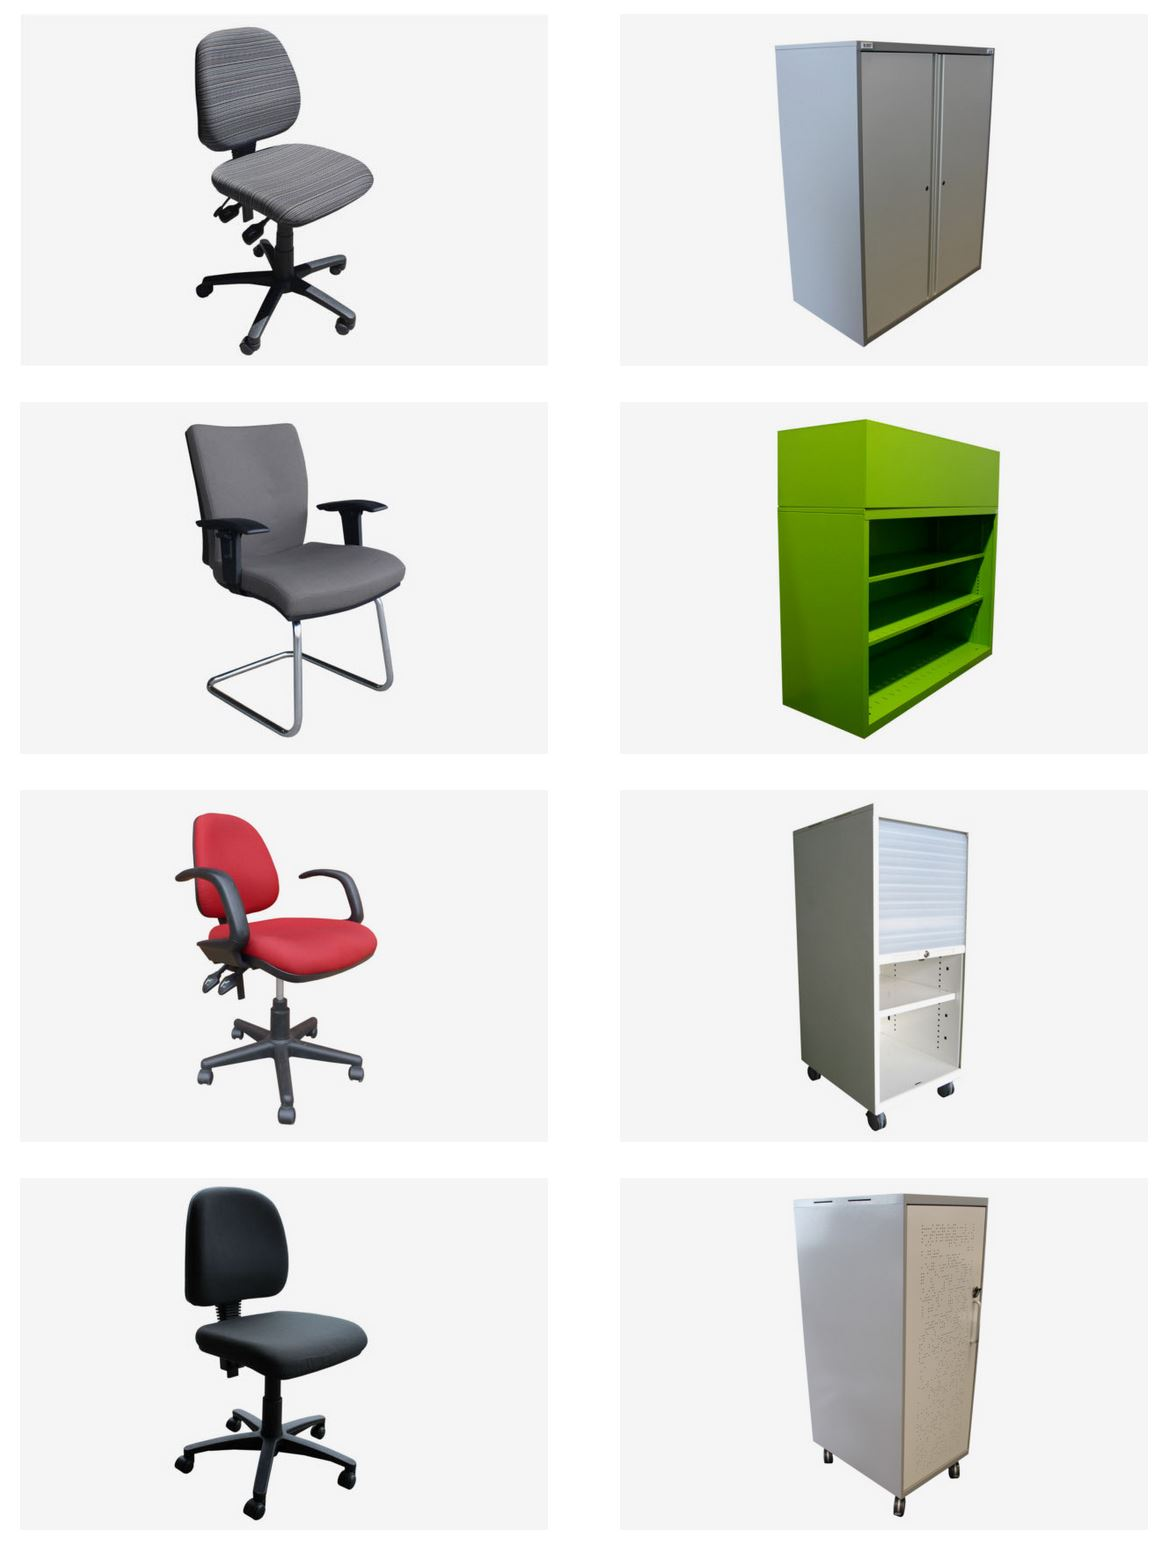 New year office furniture clearance sale up to 50 off for Furniture year end sale 2017